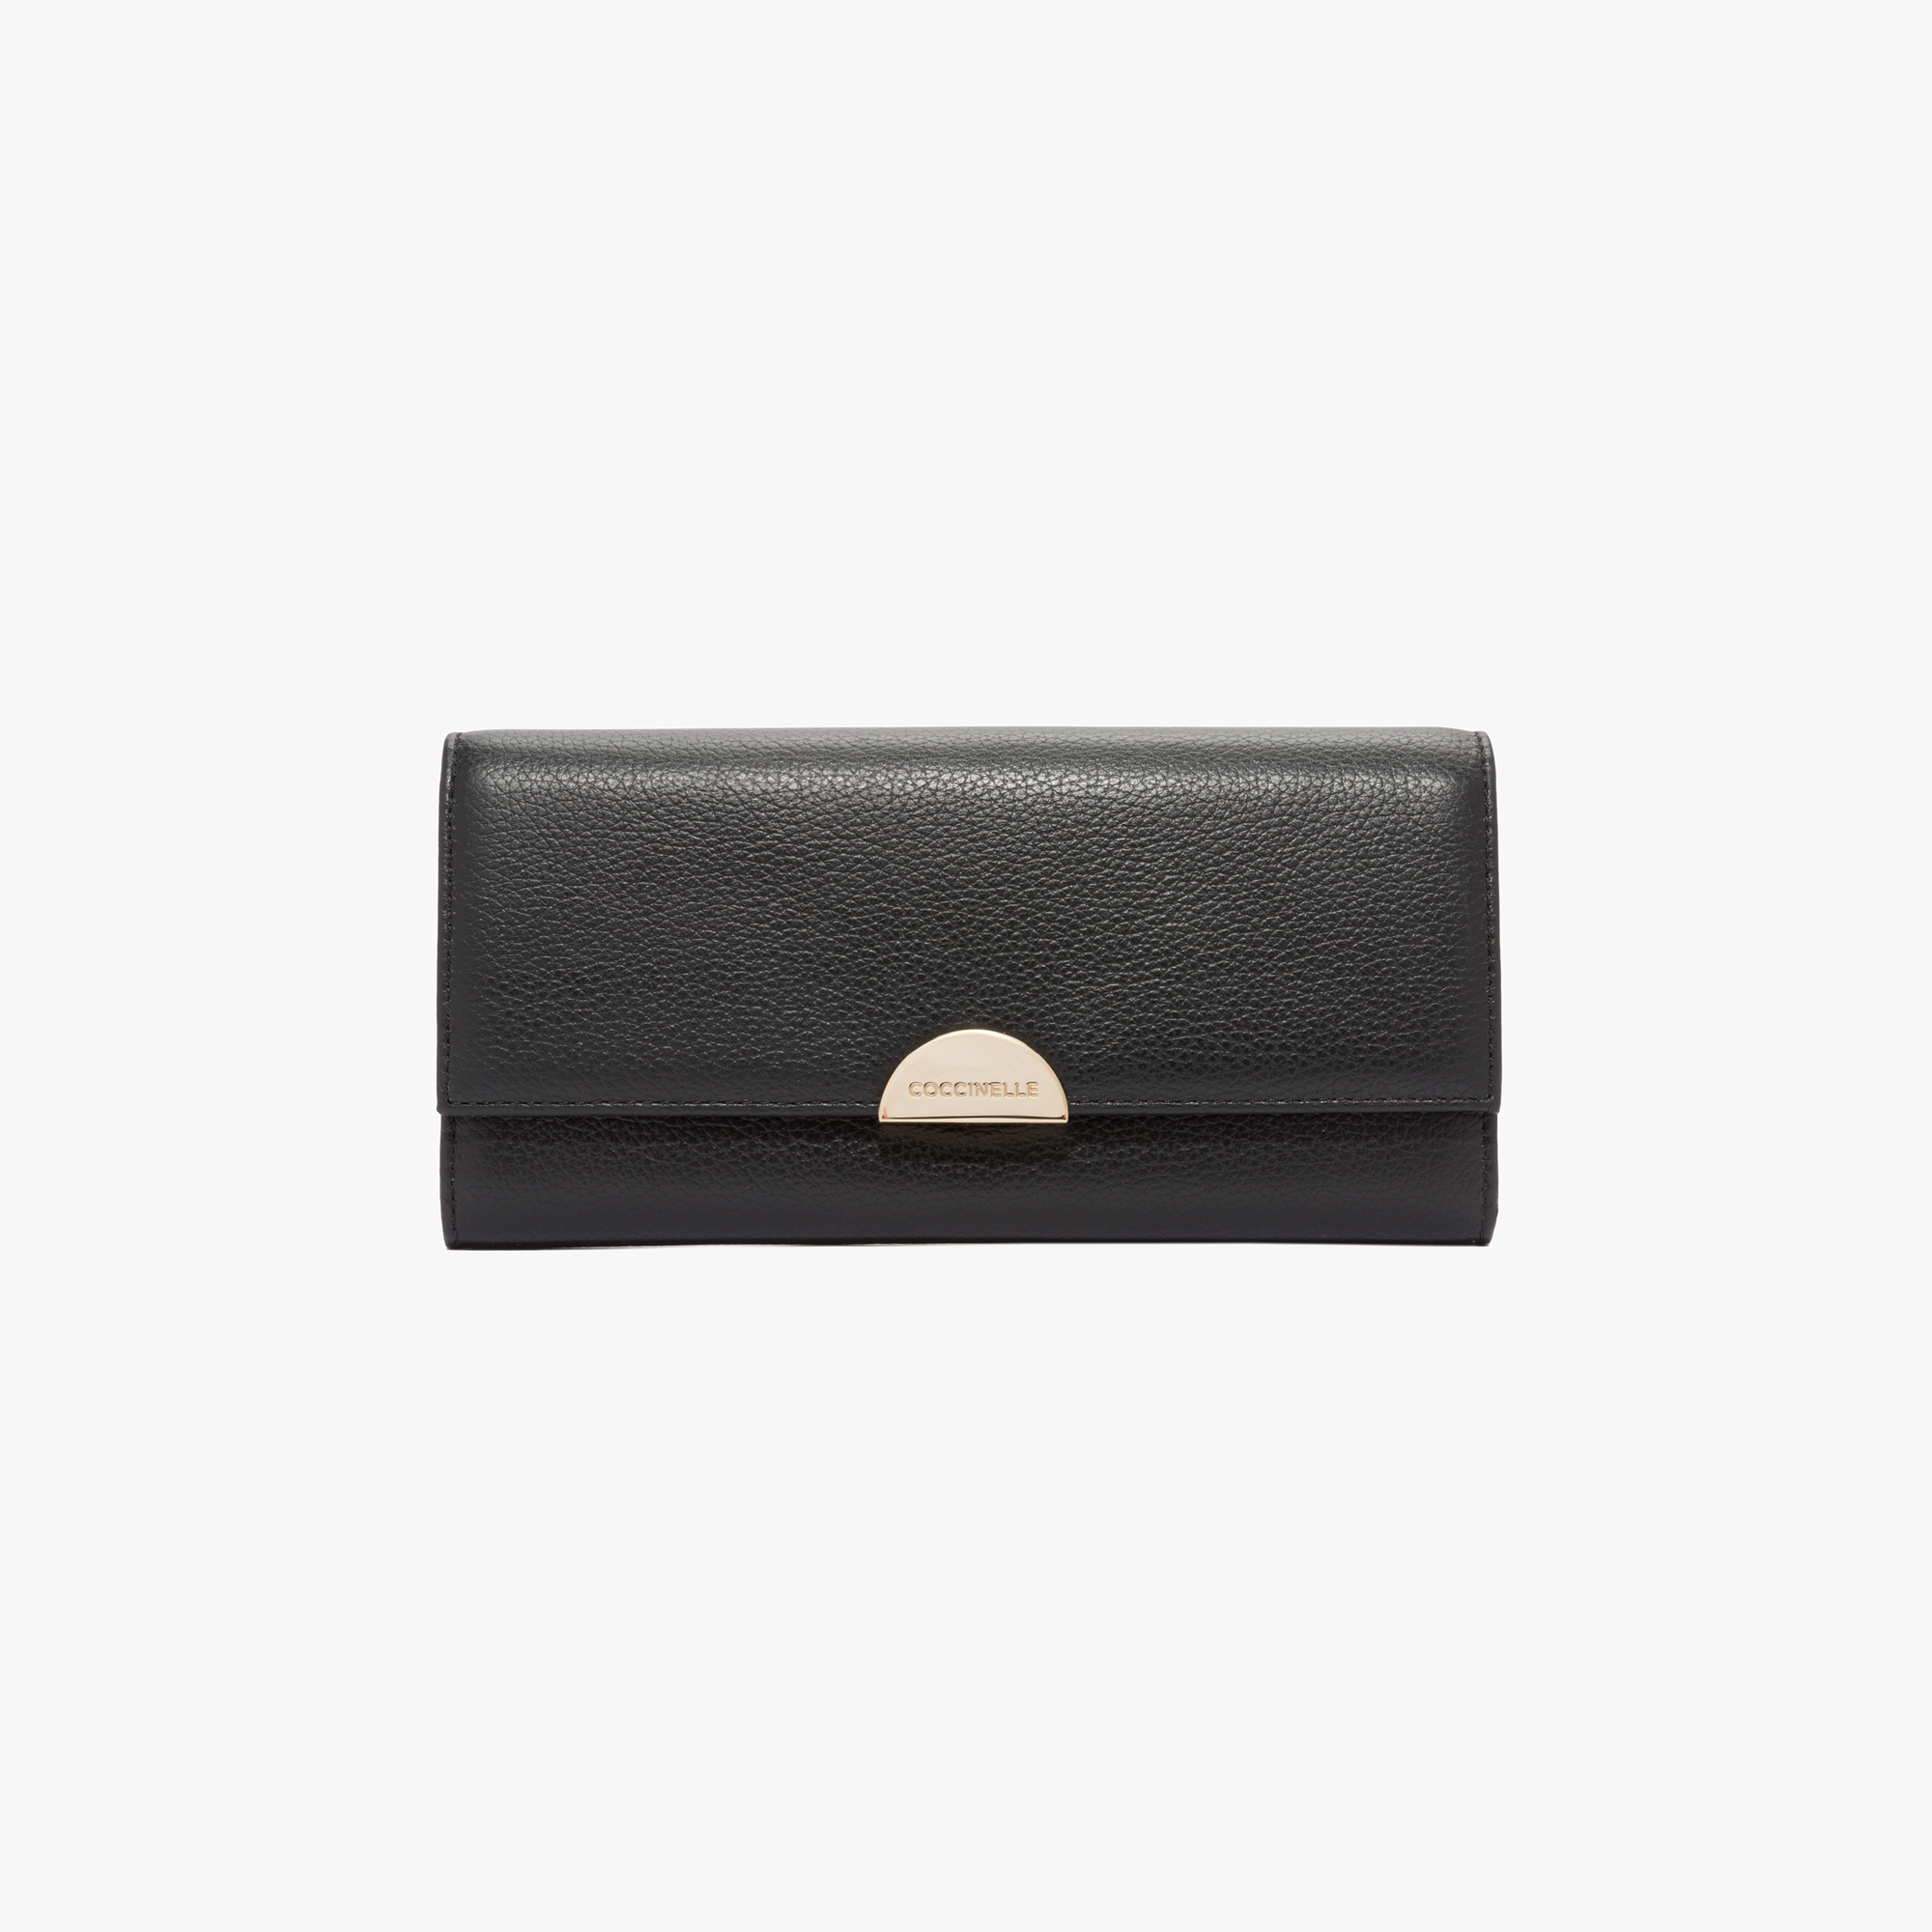 Leather wallet